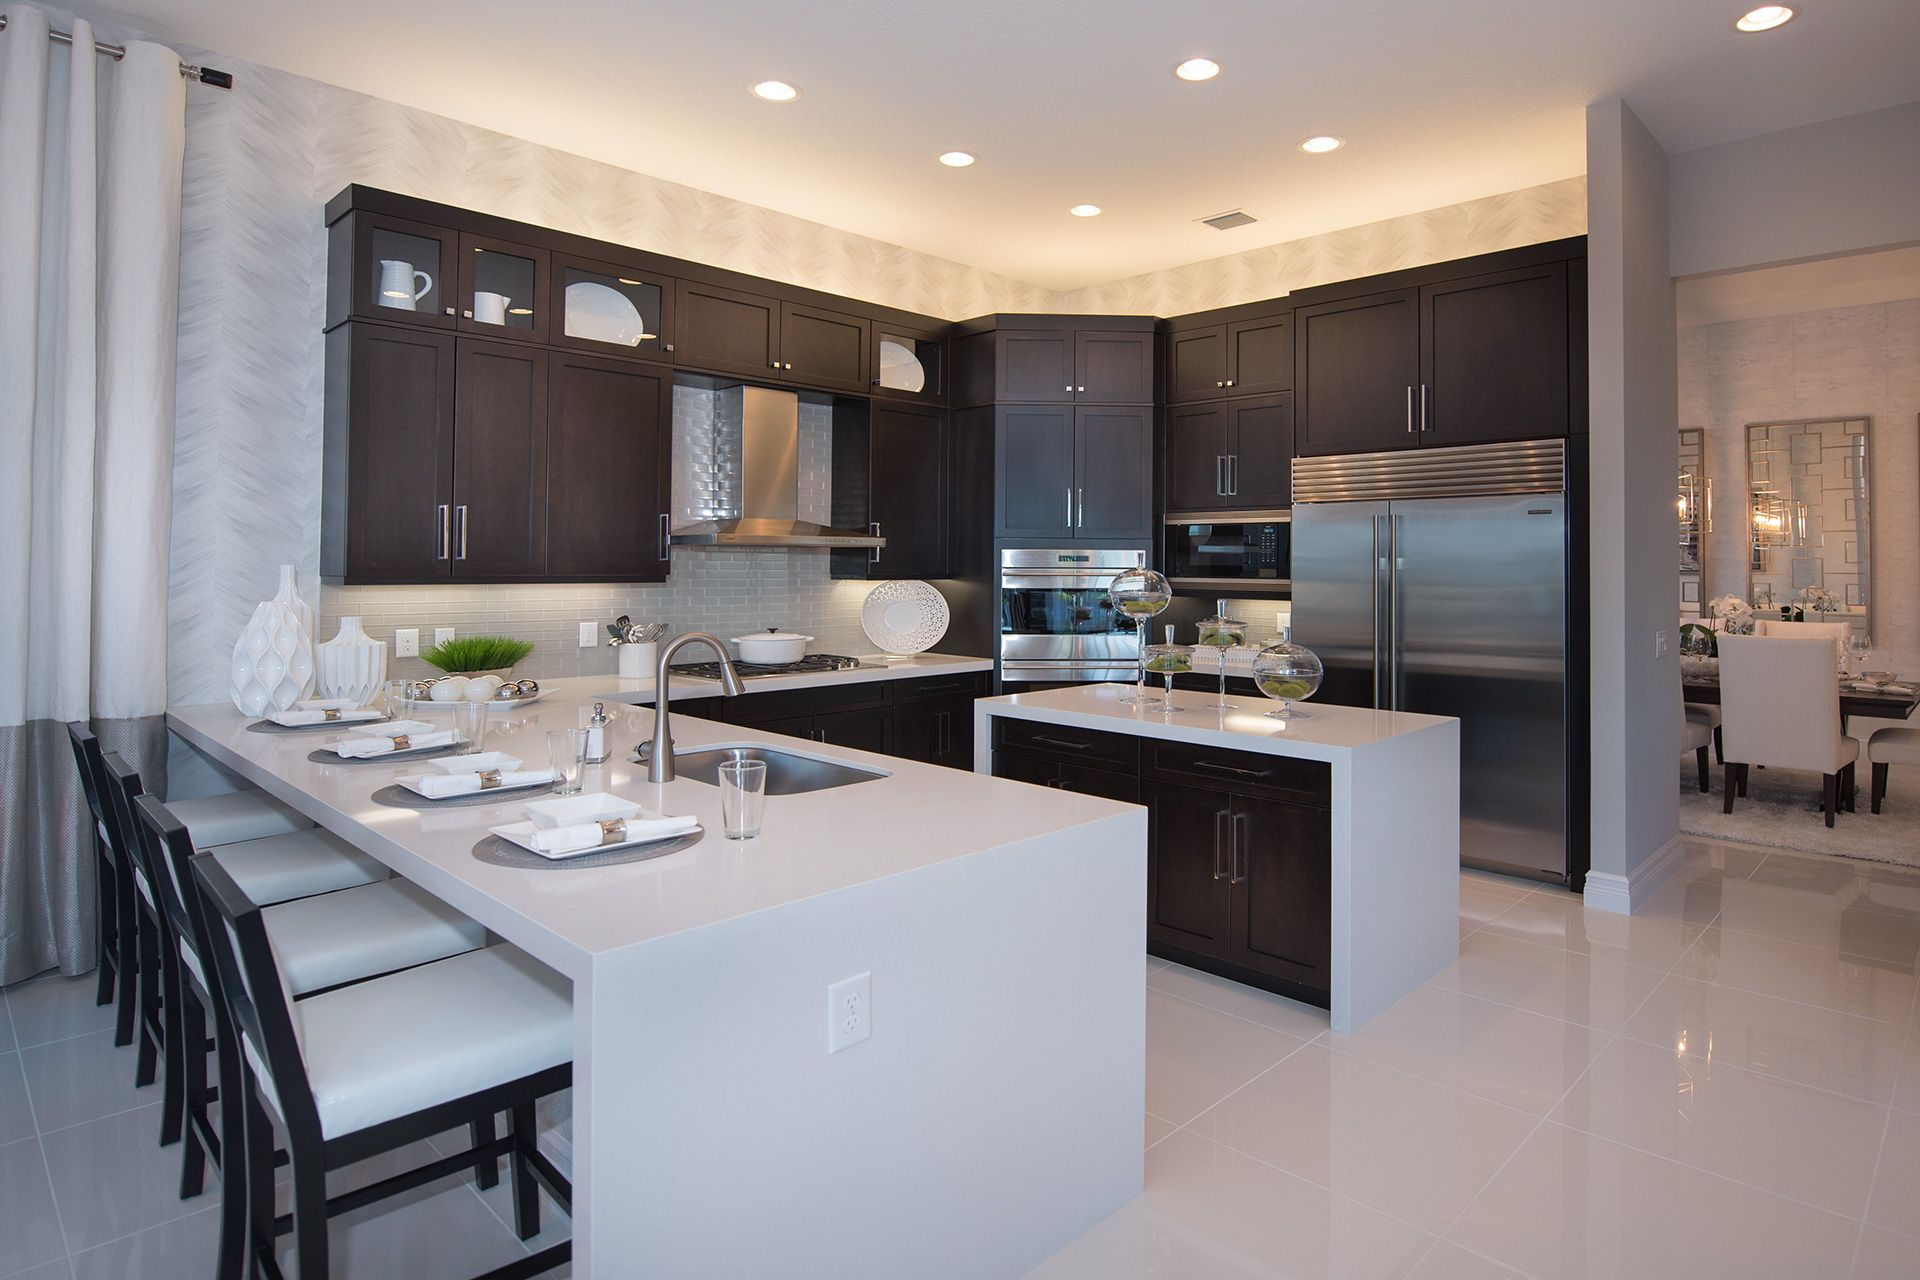 Kitchen featured in the Charleston Grande Contemporary By GL Homes in Palm Beach County, FL